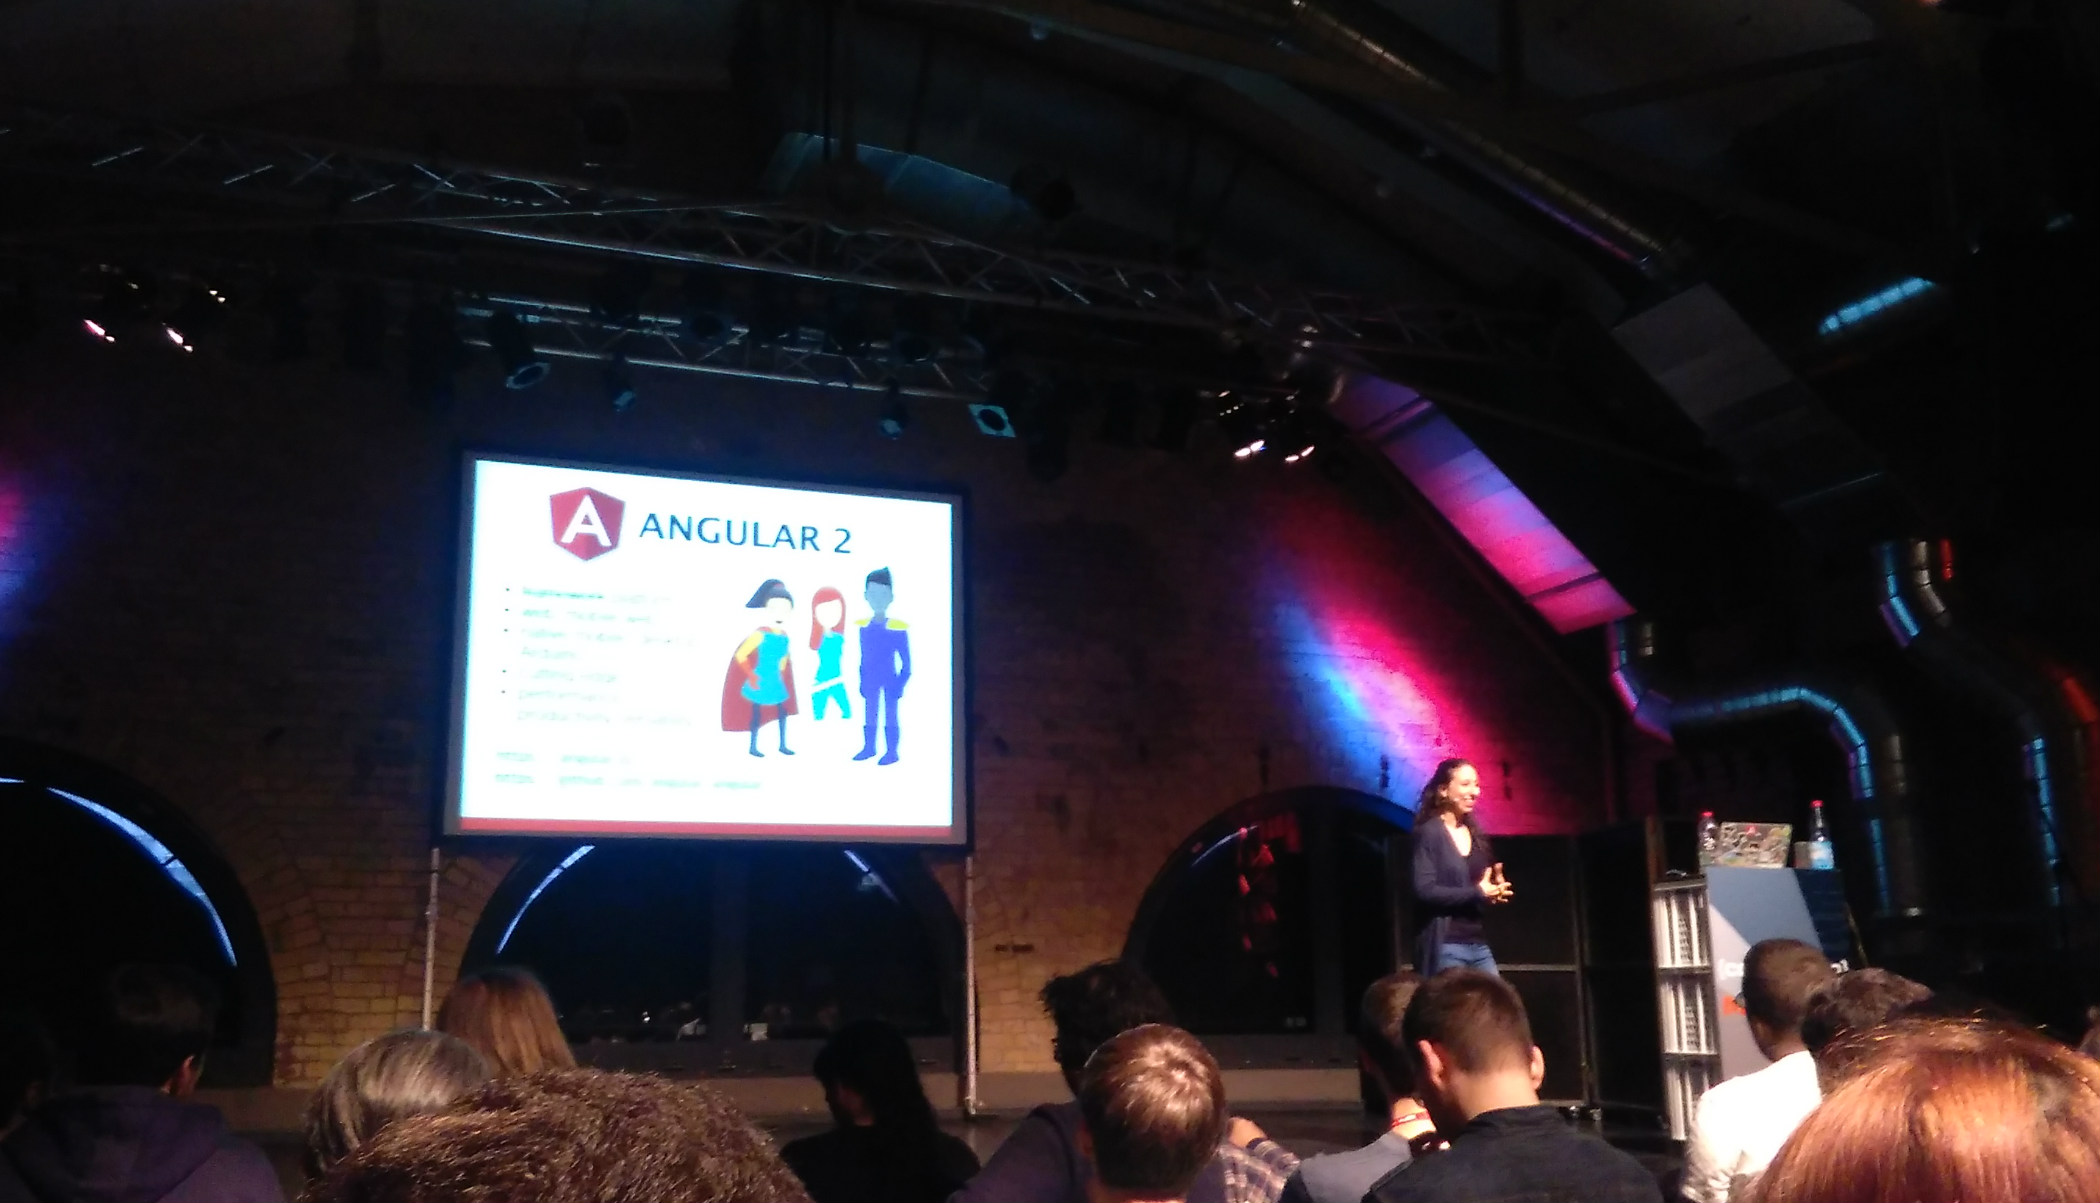 Shmuela Jacobs about Angular 2